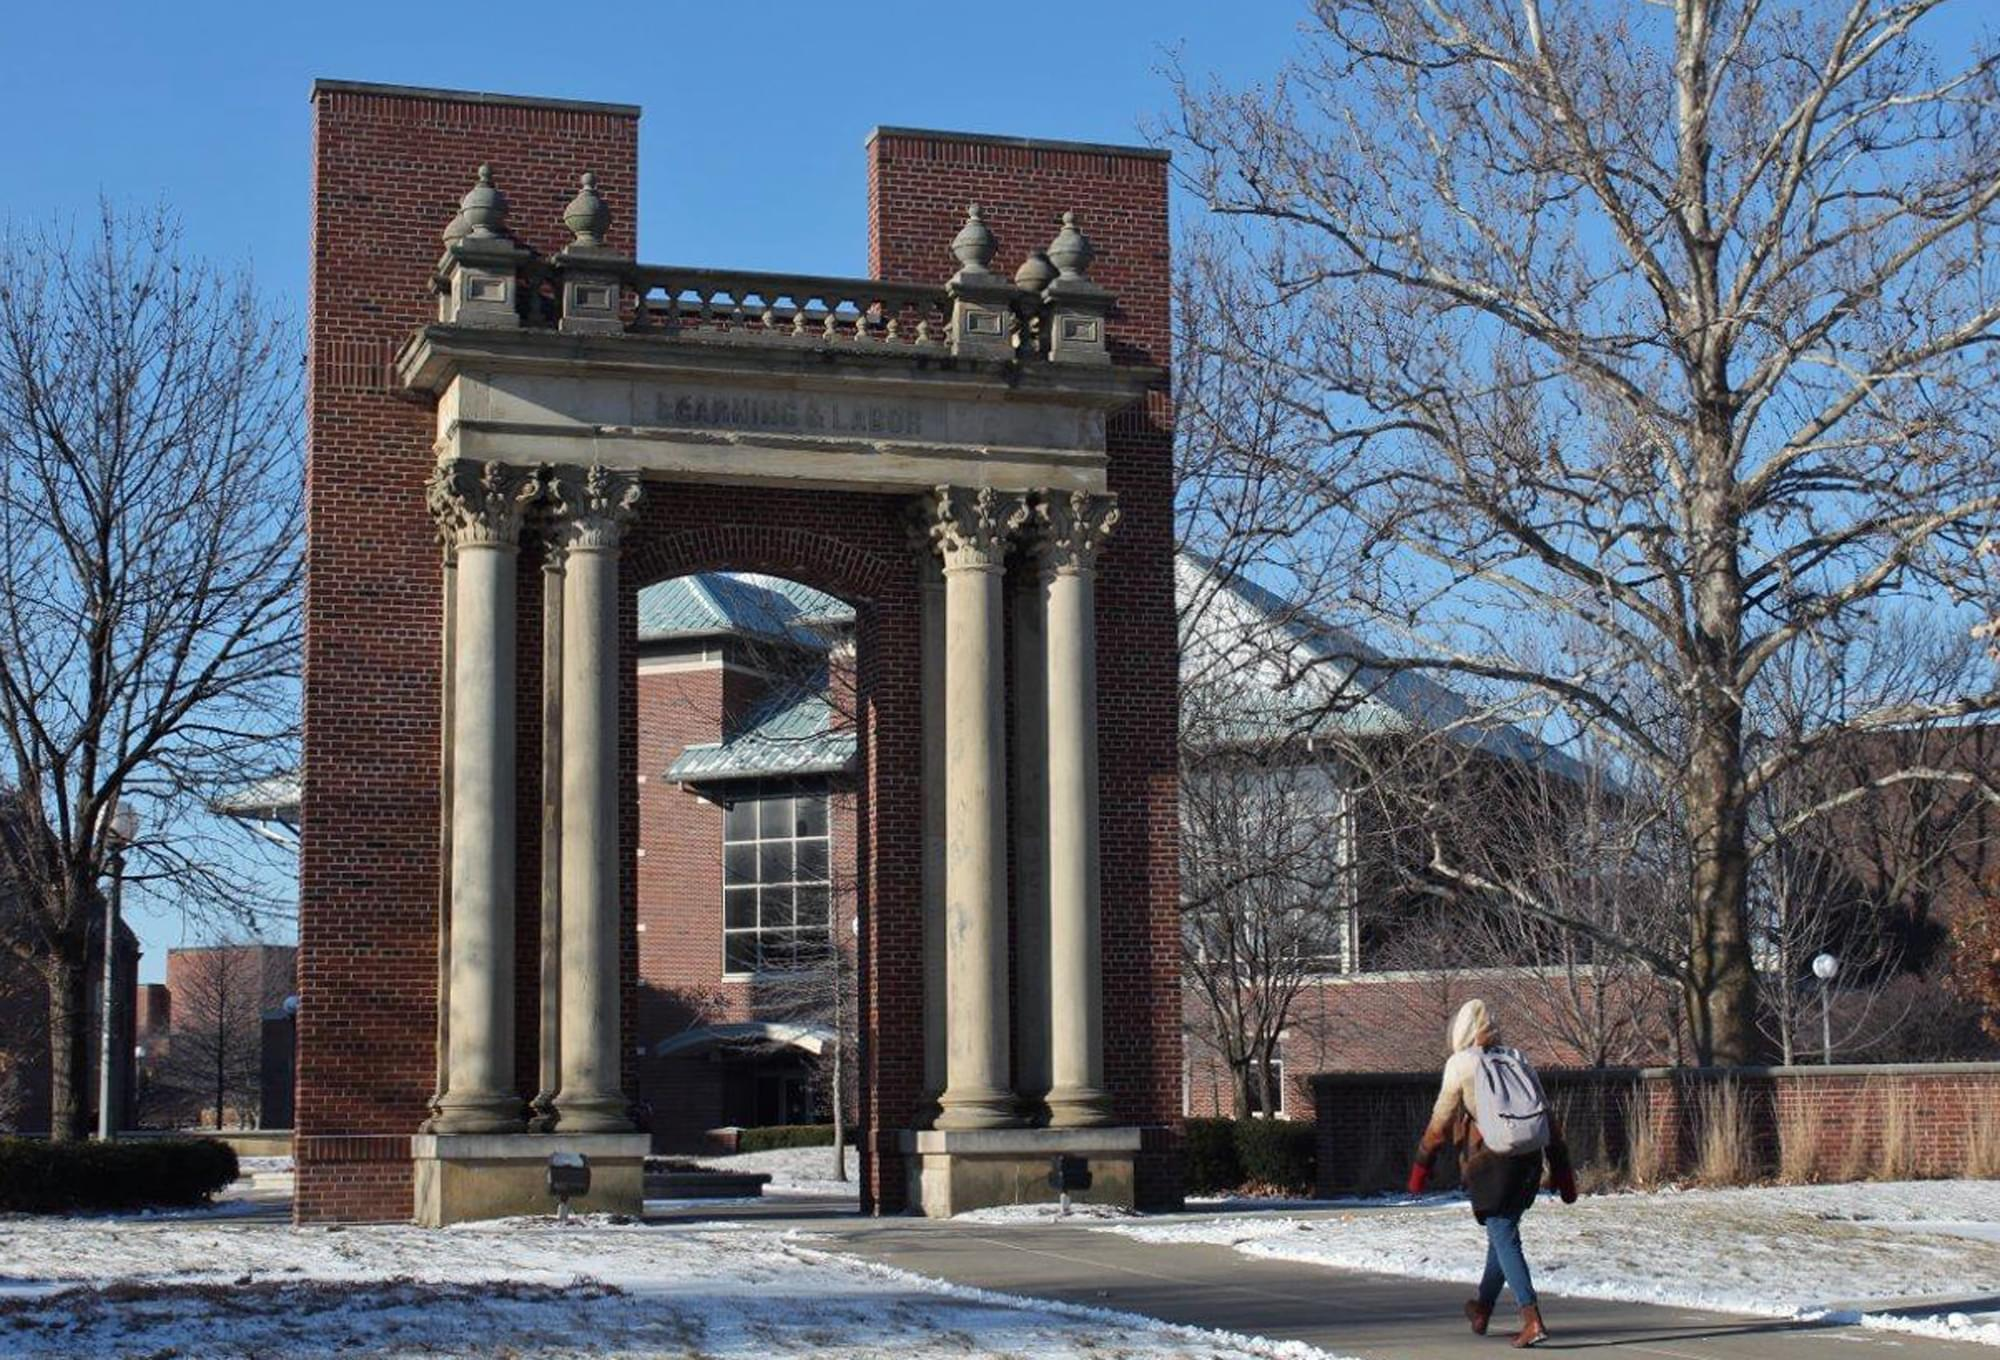 A woman walks on the U of I campus in Urbana in a February 19th photo.